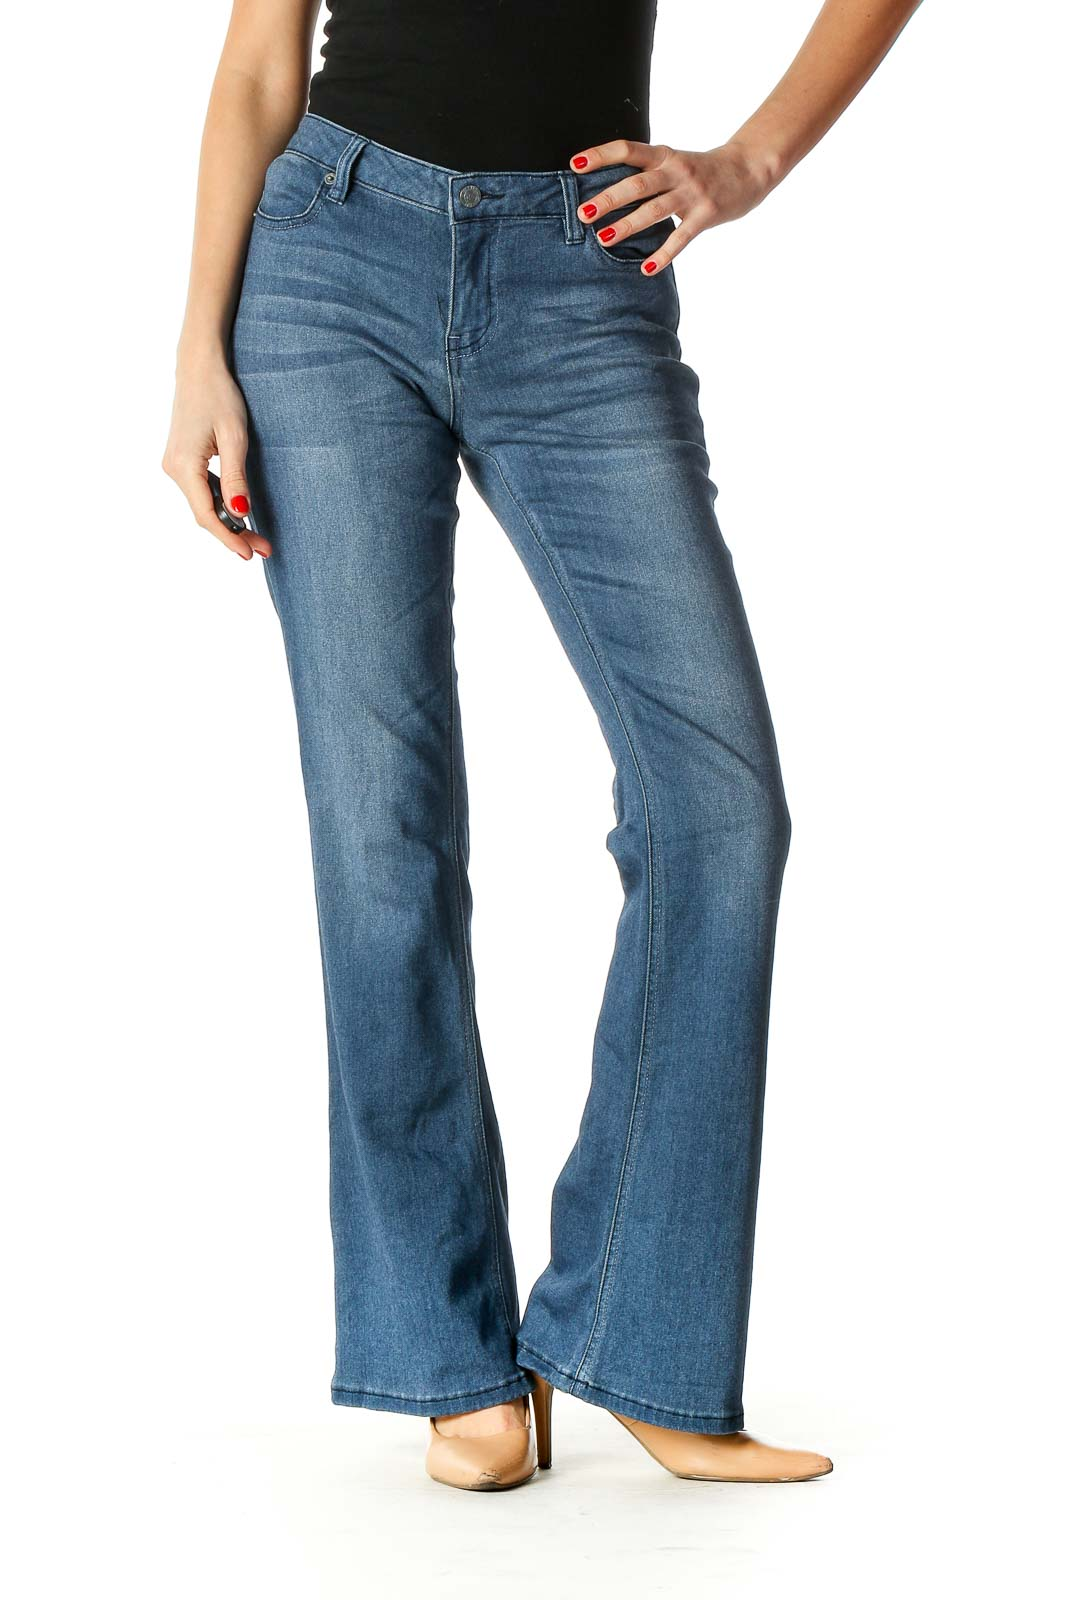 Blue Casual Bootcut Jeans Front